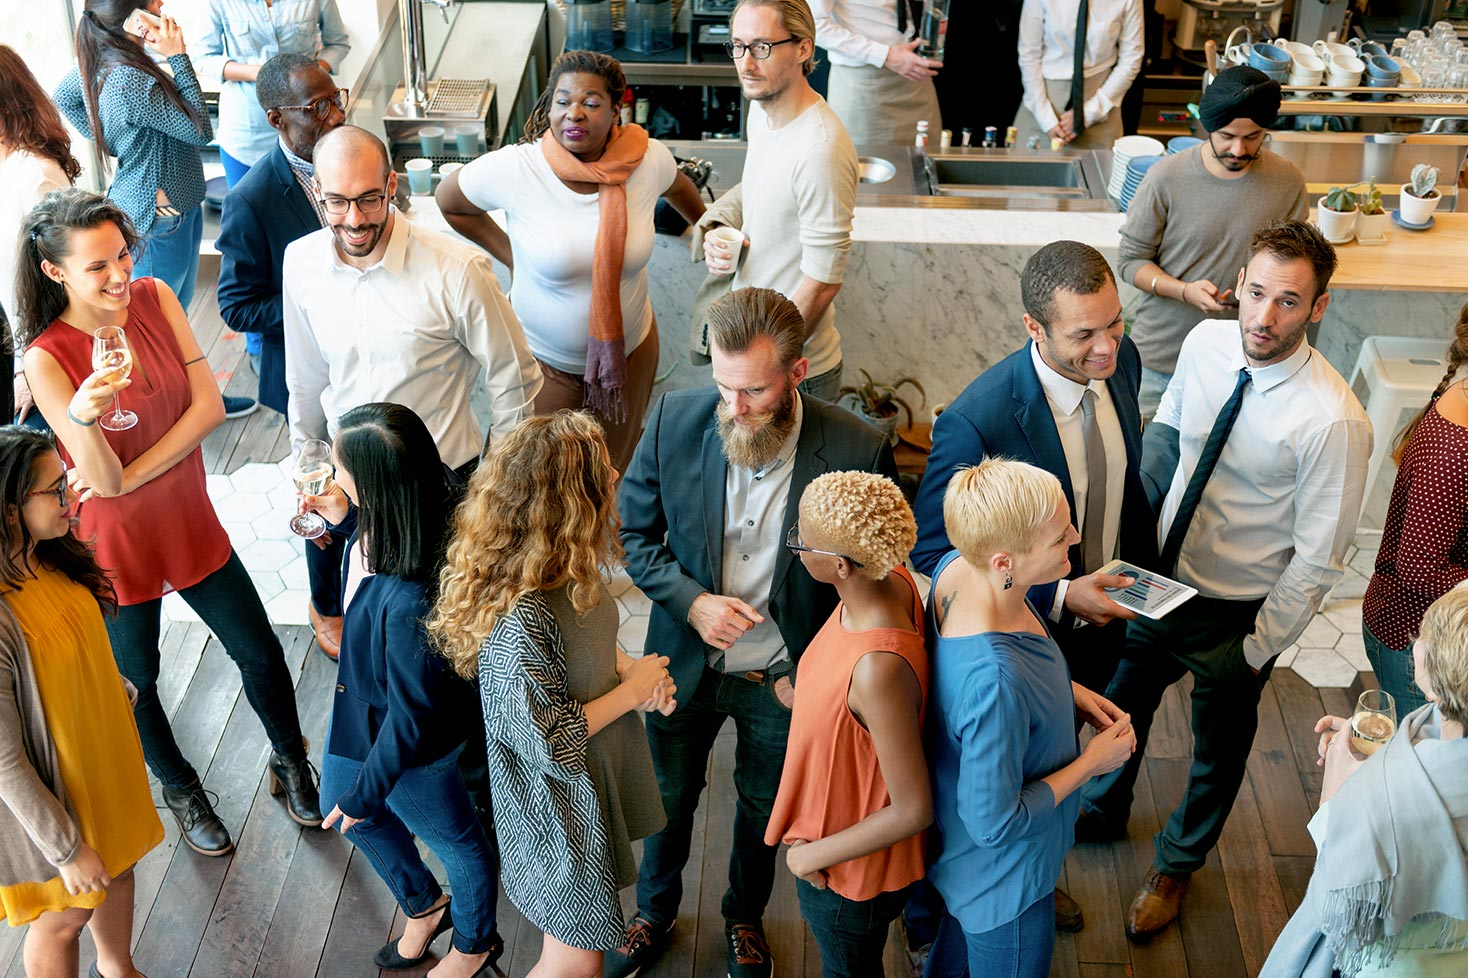 Networking tips for the introverted